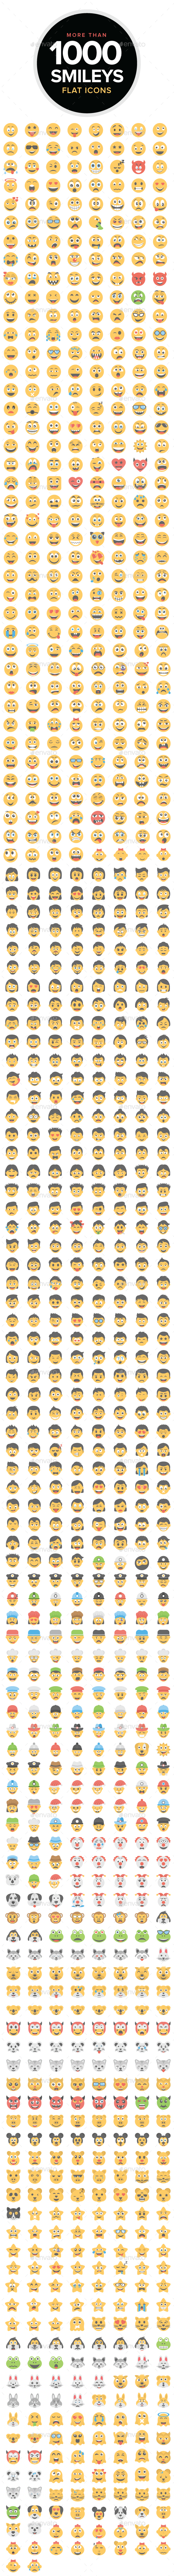 1000 Flat Smiley Icons - Icons